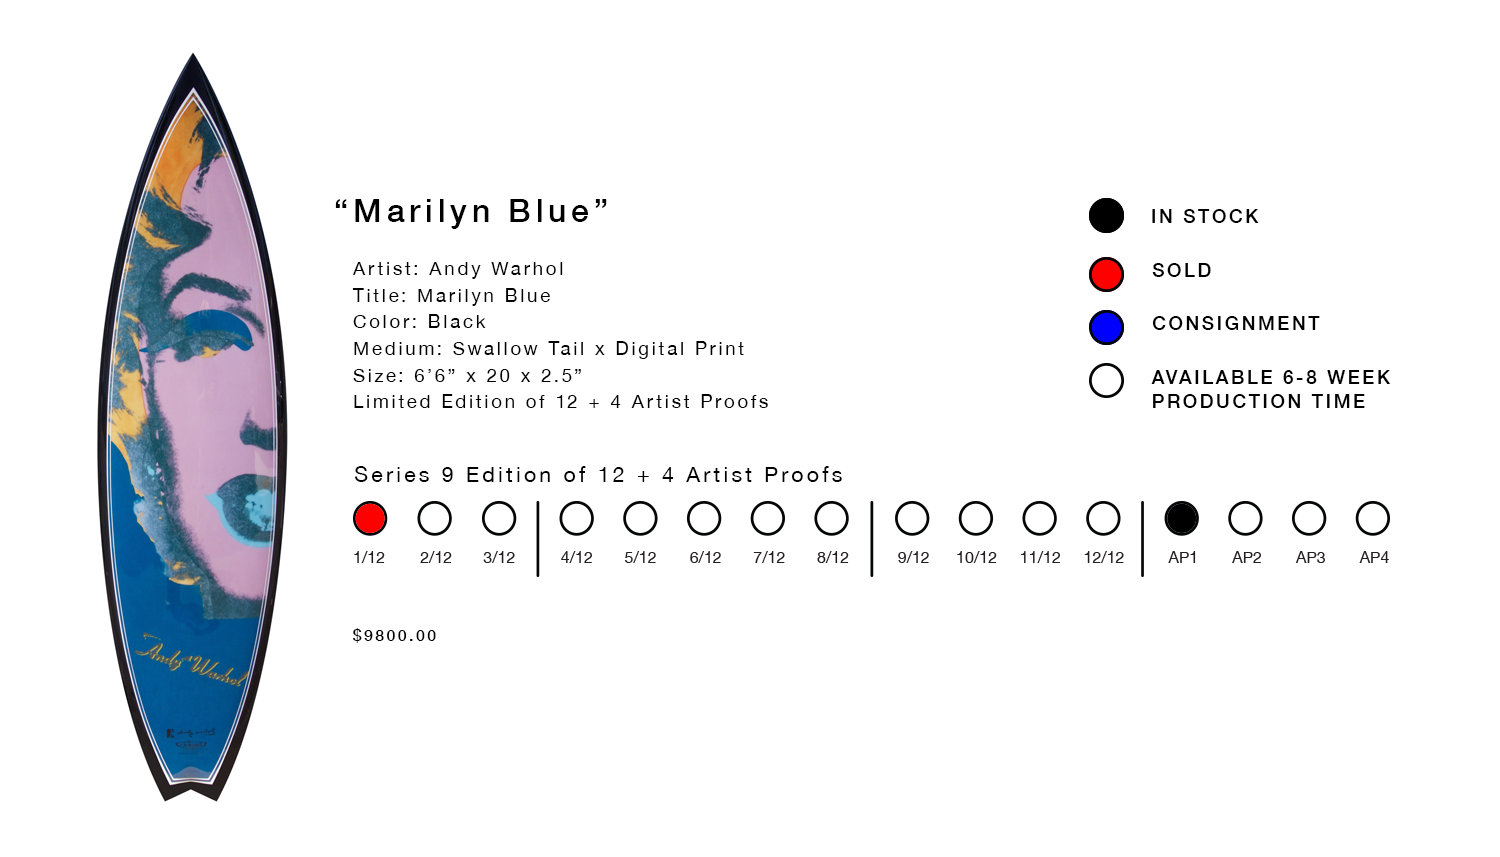 MARILYN_BLUE_AVAIL.png